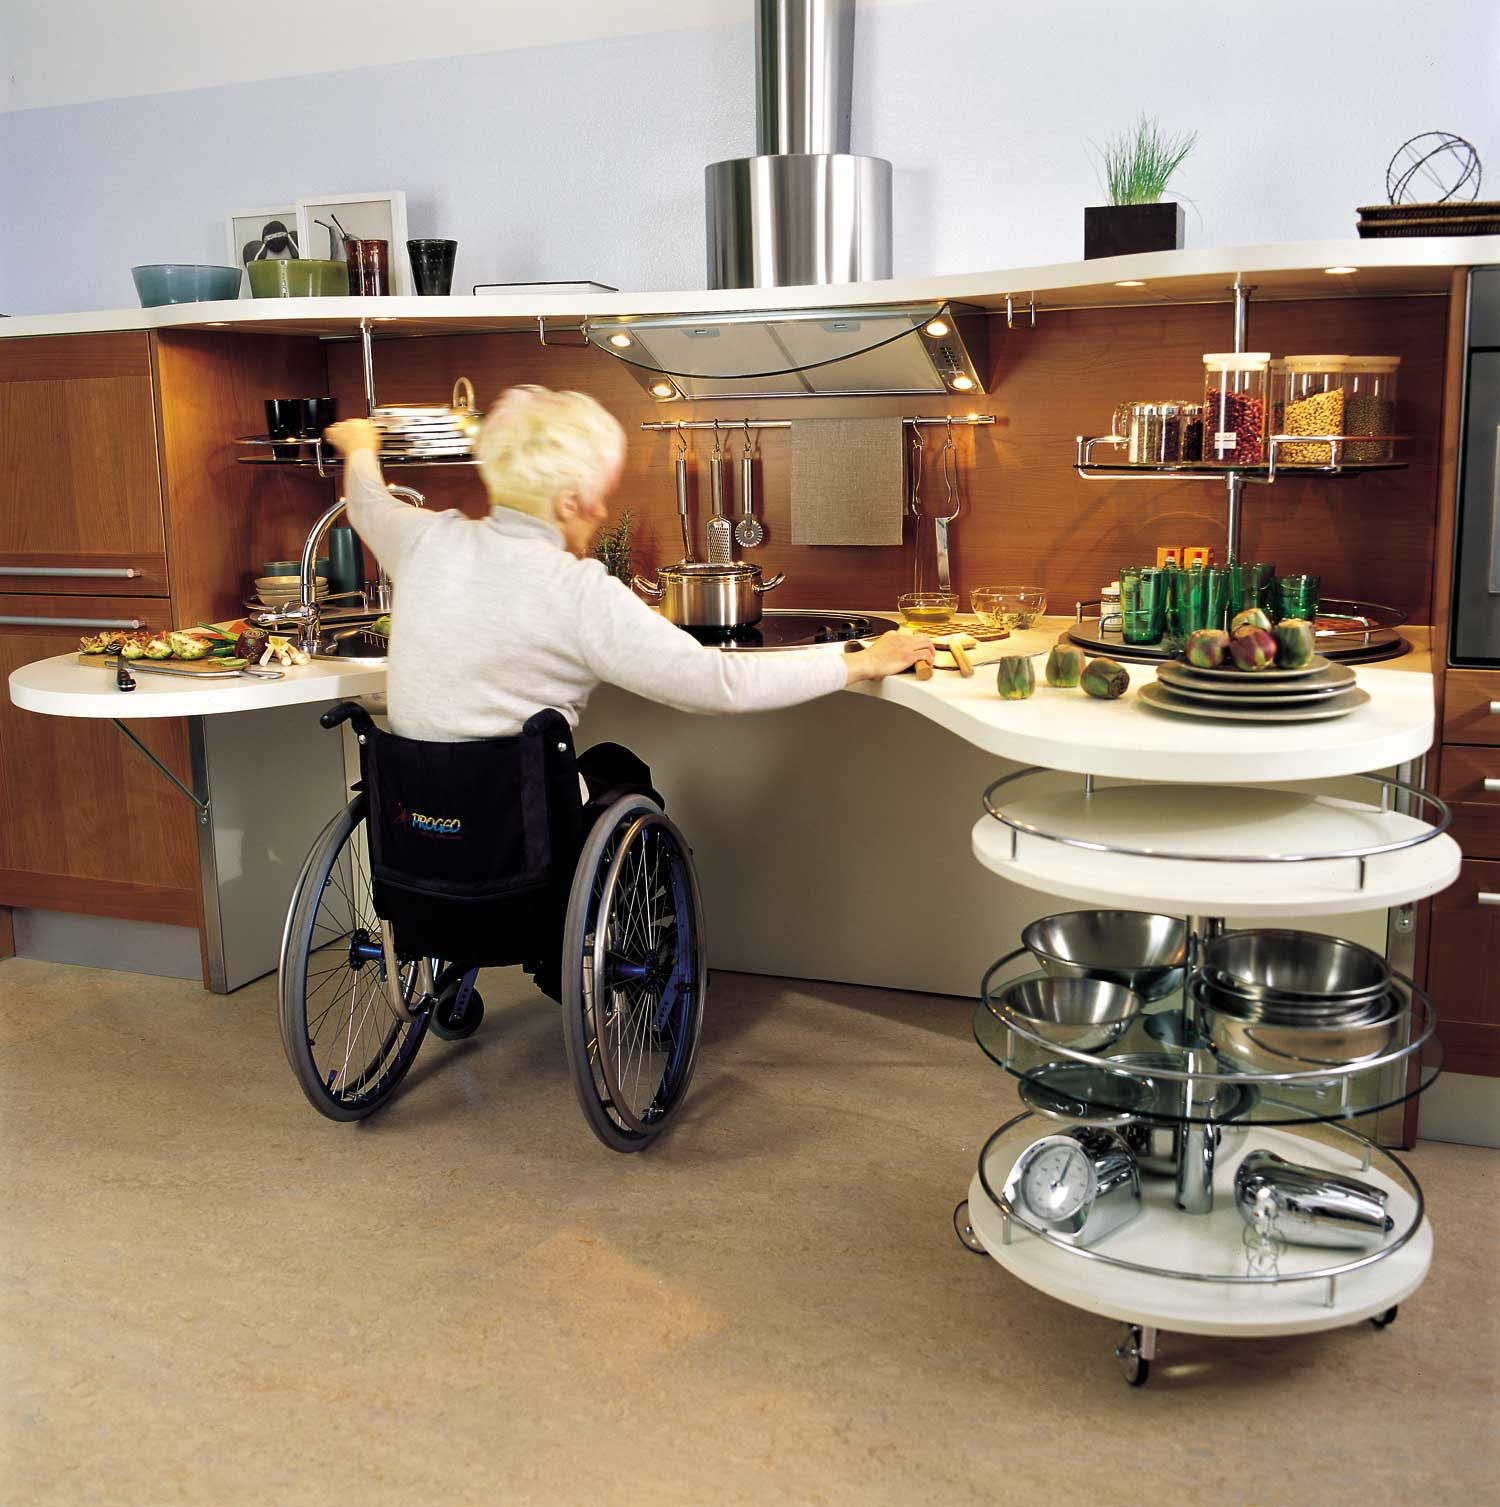 Sleek Kitchen Design: Simple, Sleek Kitchen Design For Wheelchair Users